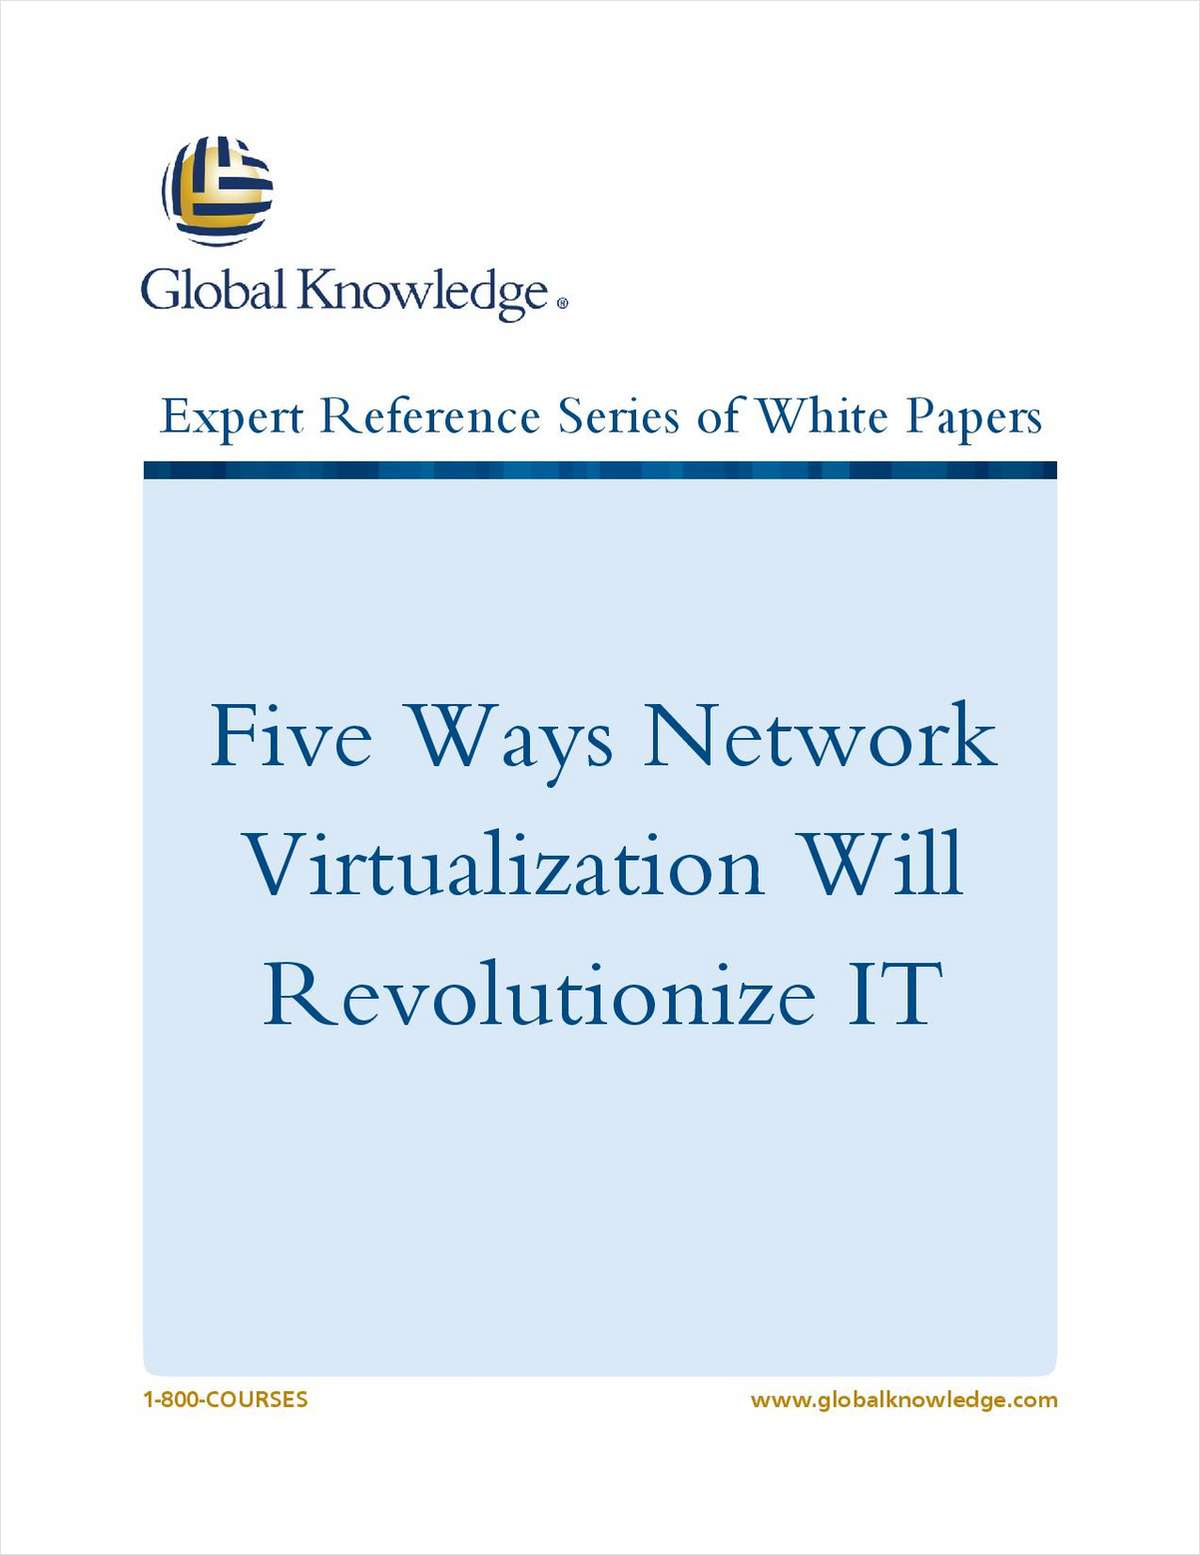 Five Ways Network Virtualization Will Revolutionize IT